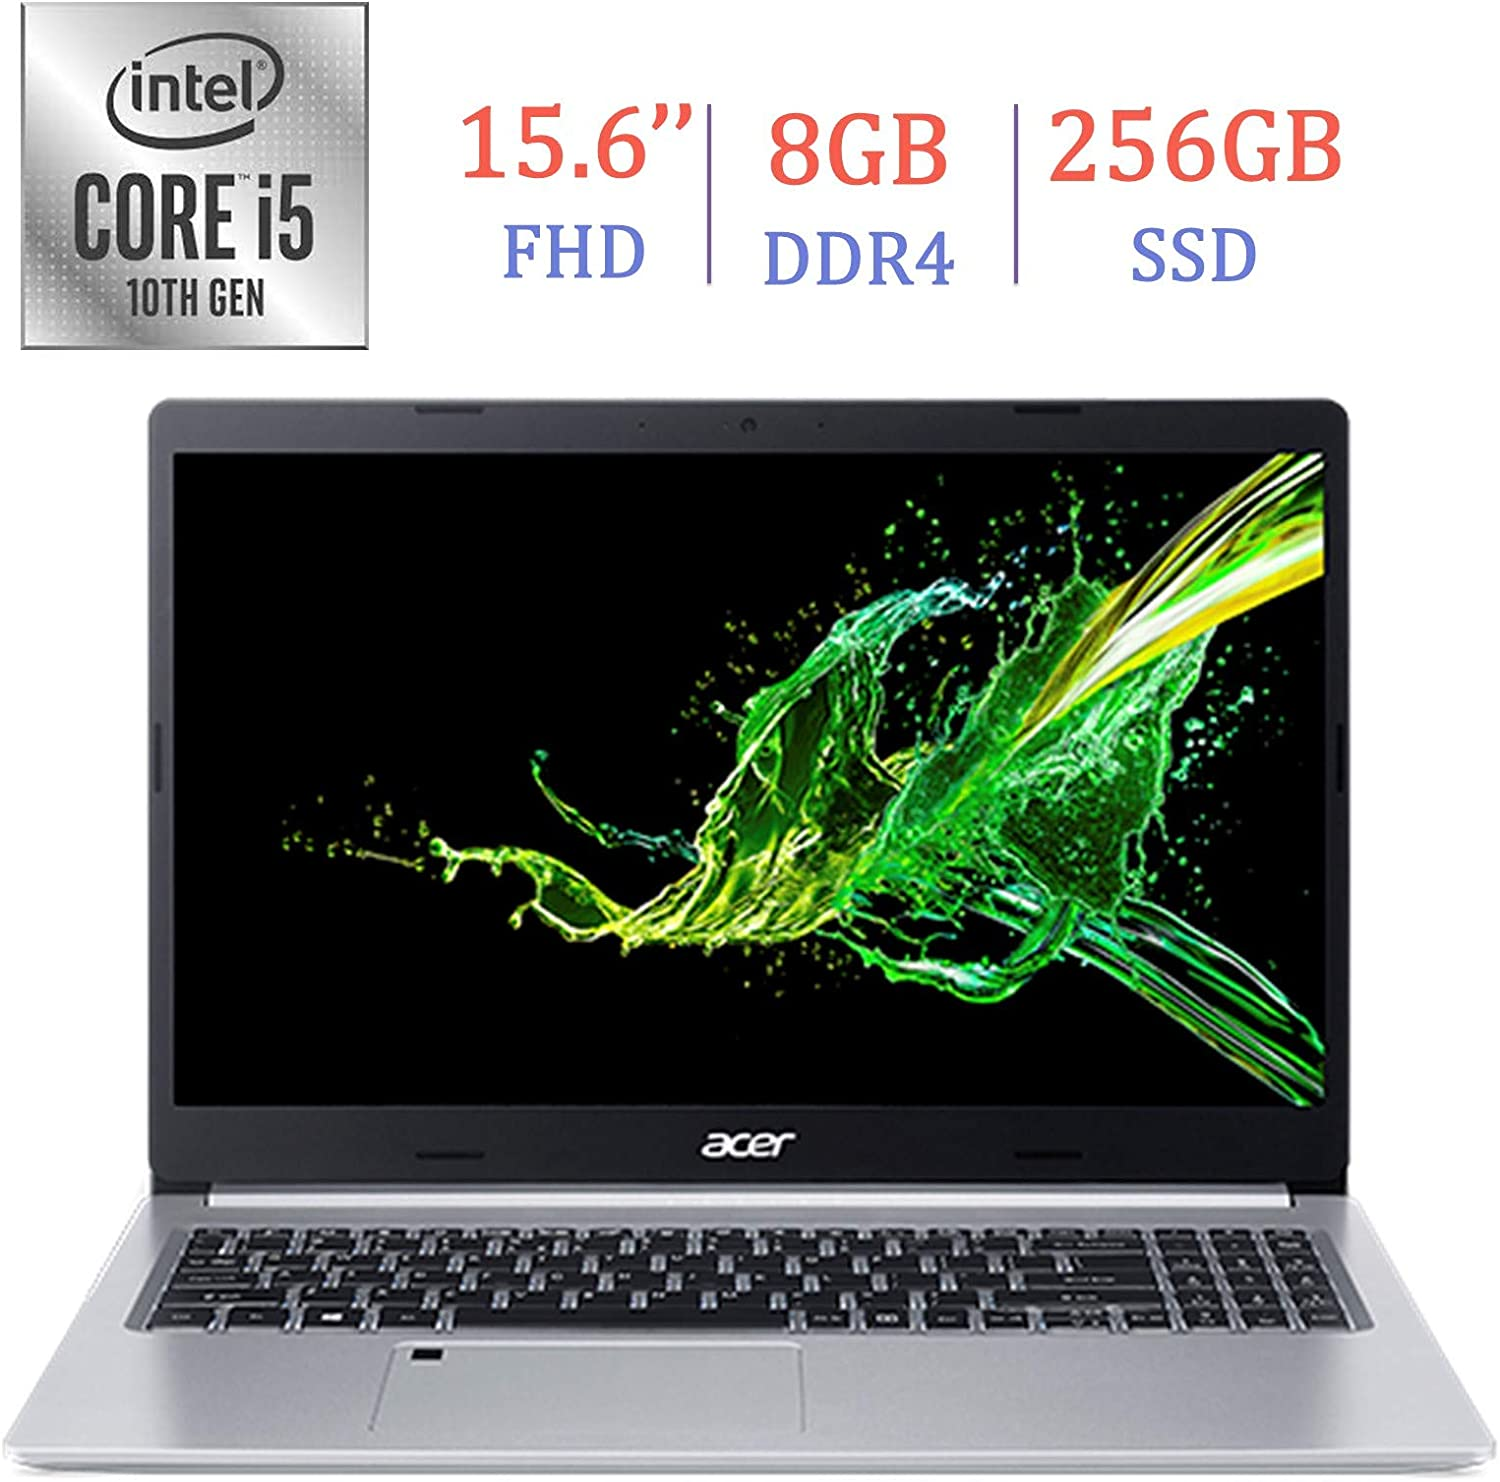 Acer Premium Aspire 5 A515 15.6-inch FHD (1920x1080) Laptop PC, 10th Gen Quad-Core Intel i5-10210U up to 4.2GHz, 8GB DDR4, 256GB SSD, Stereo Speakers, Intel UHD Graphics 620, Windows 10 Home